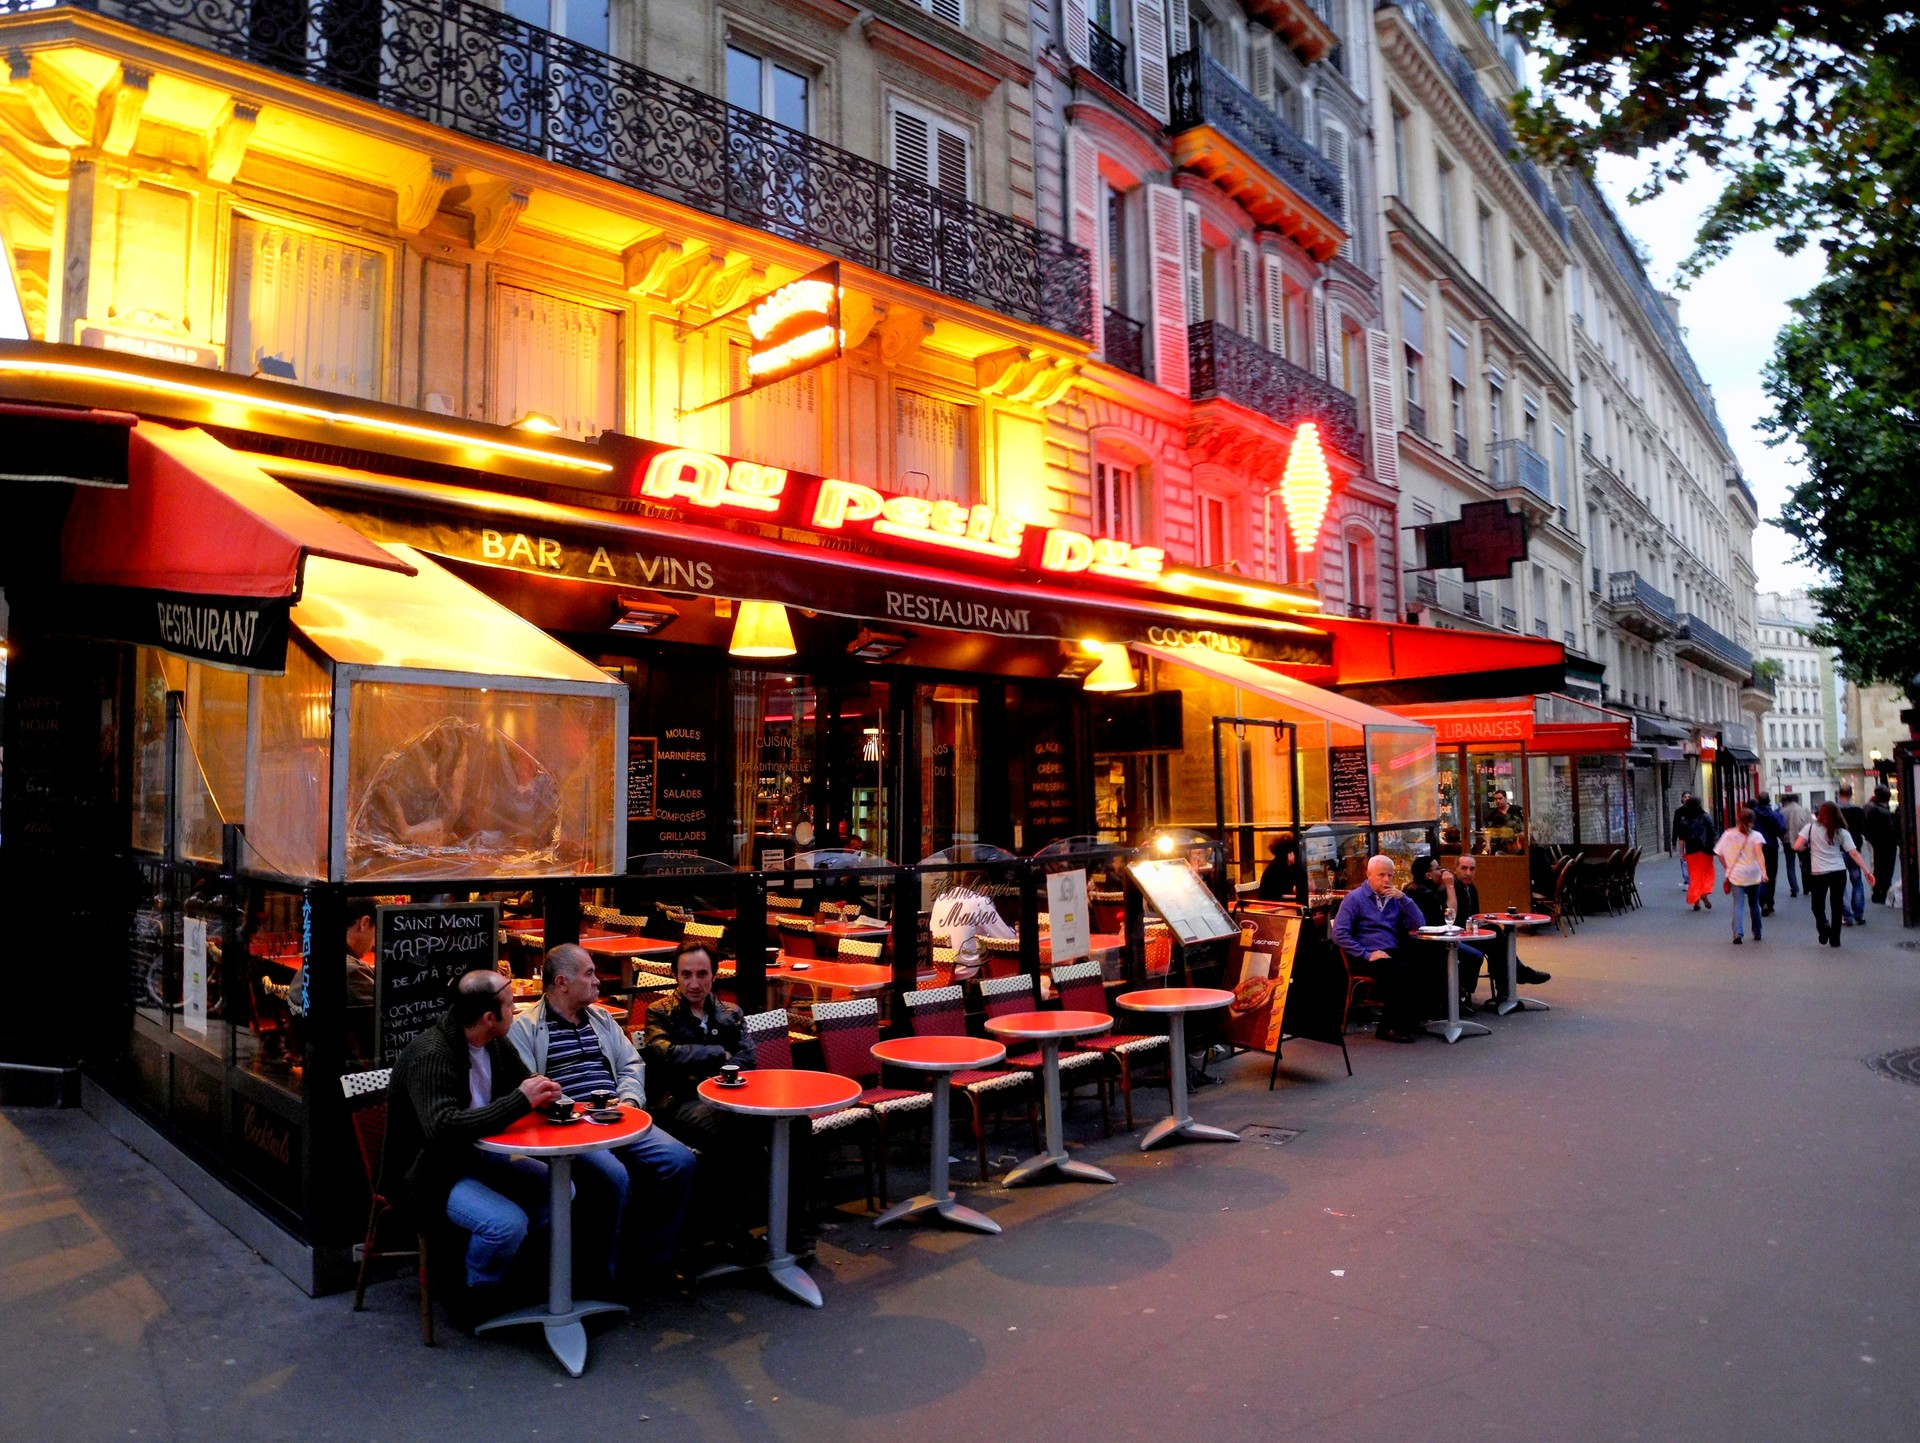 My experience in Paris, France by Silvia